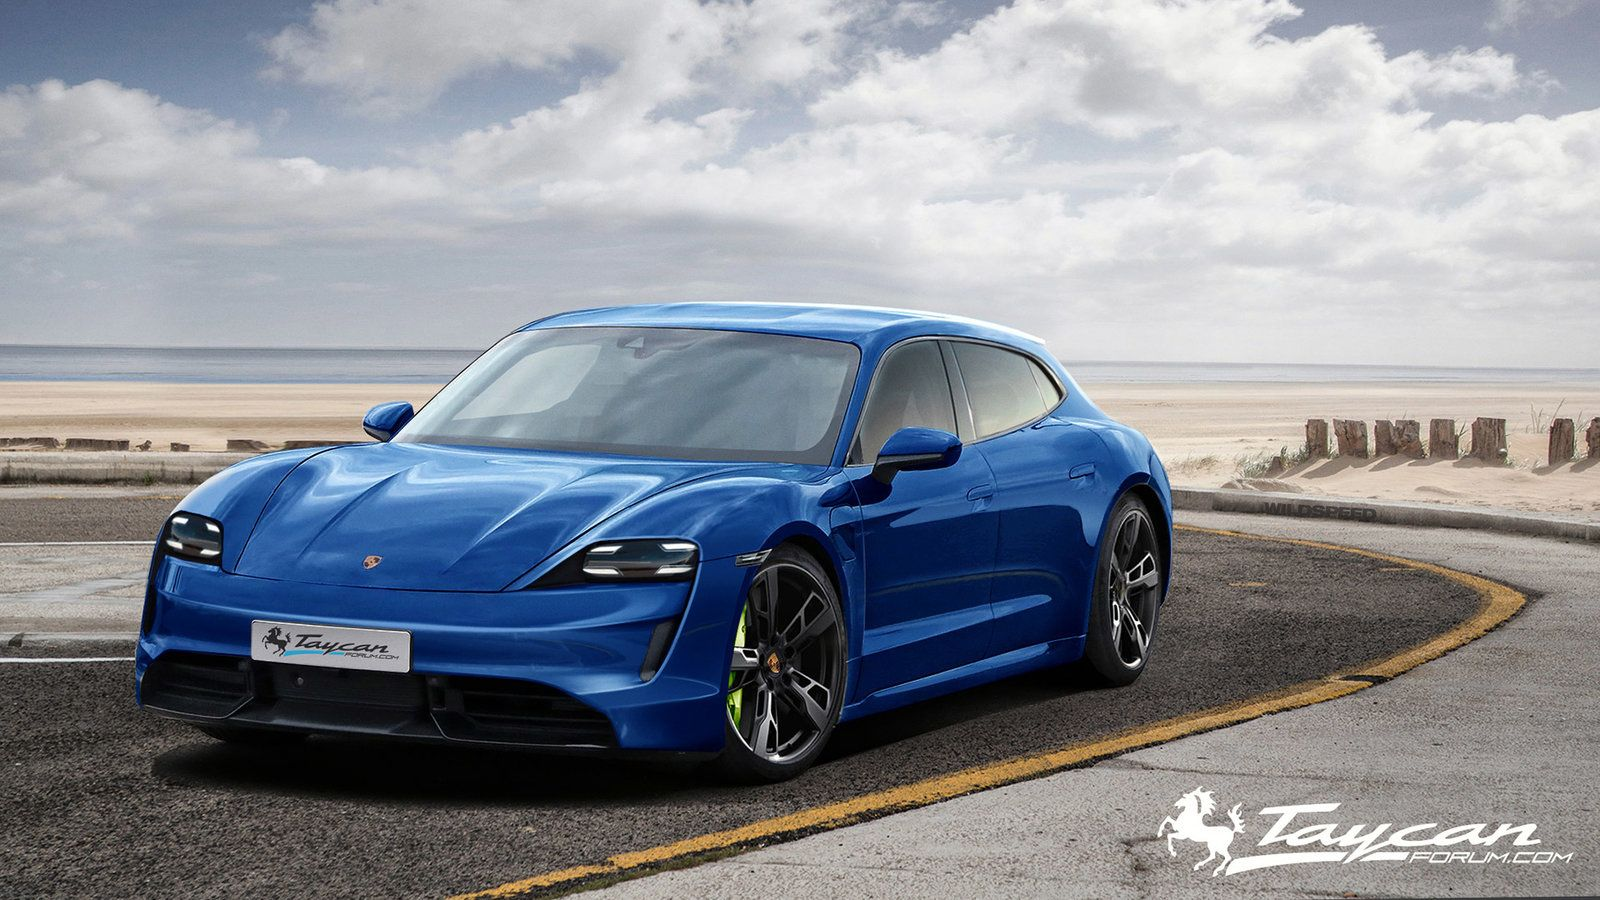 2020 Porsche Taycan Sport Turismo Ev Electric Sports Car New Tesla Roadster Porsche Taycan